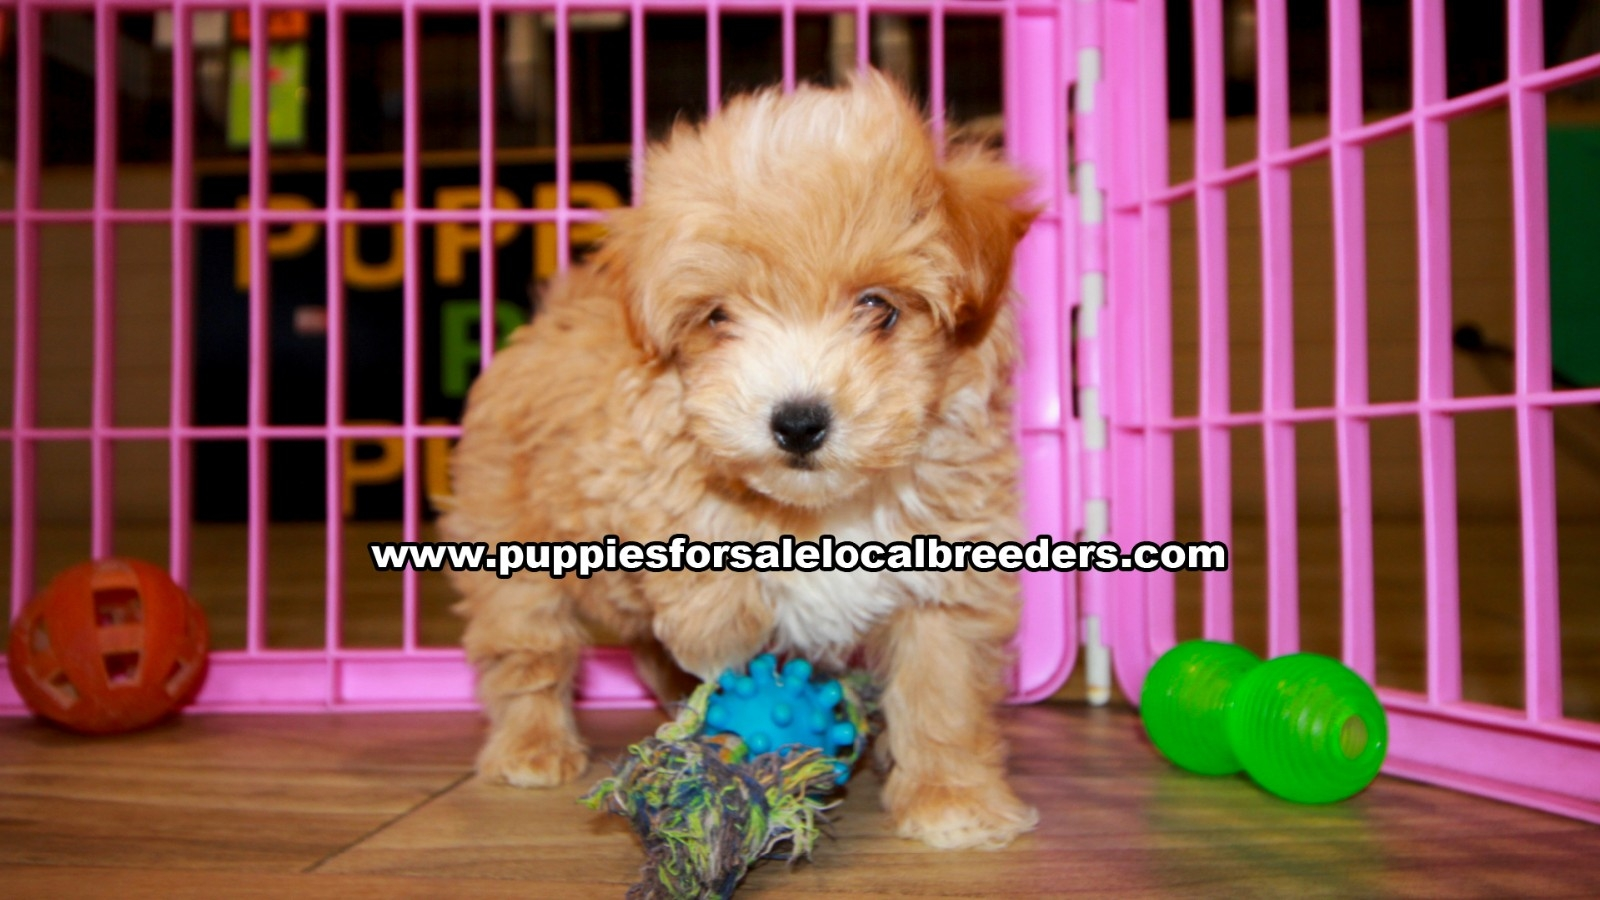 Red Pomapoo, Puppies For Sale In Georgia, Local Breeders, Near Atlanta, Ga